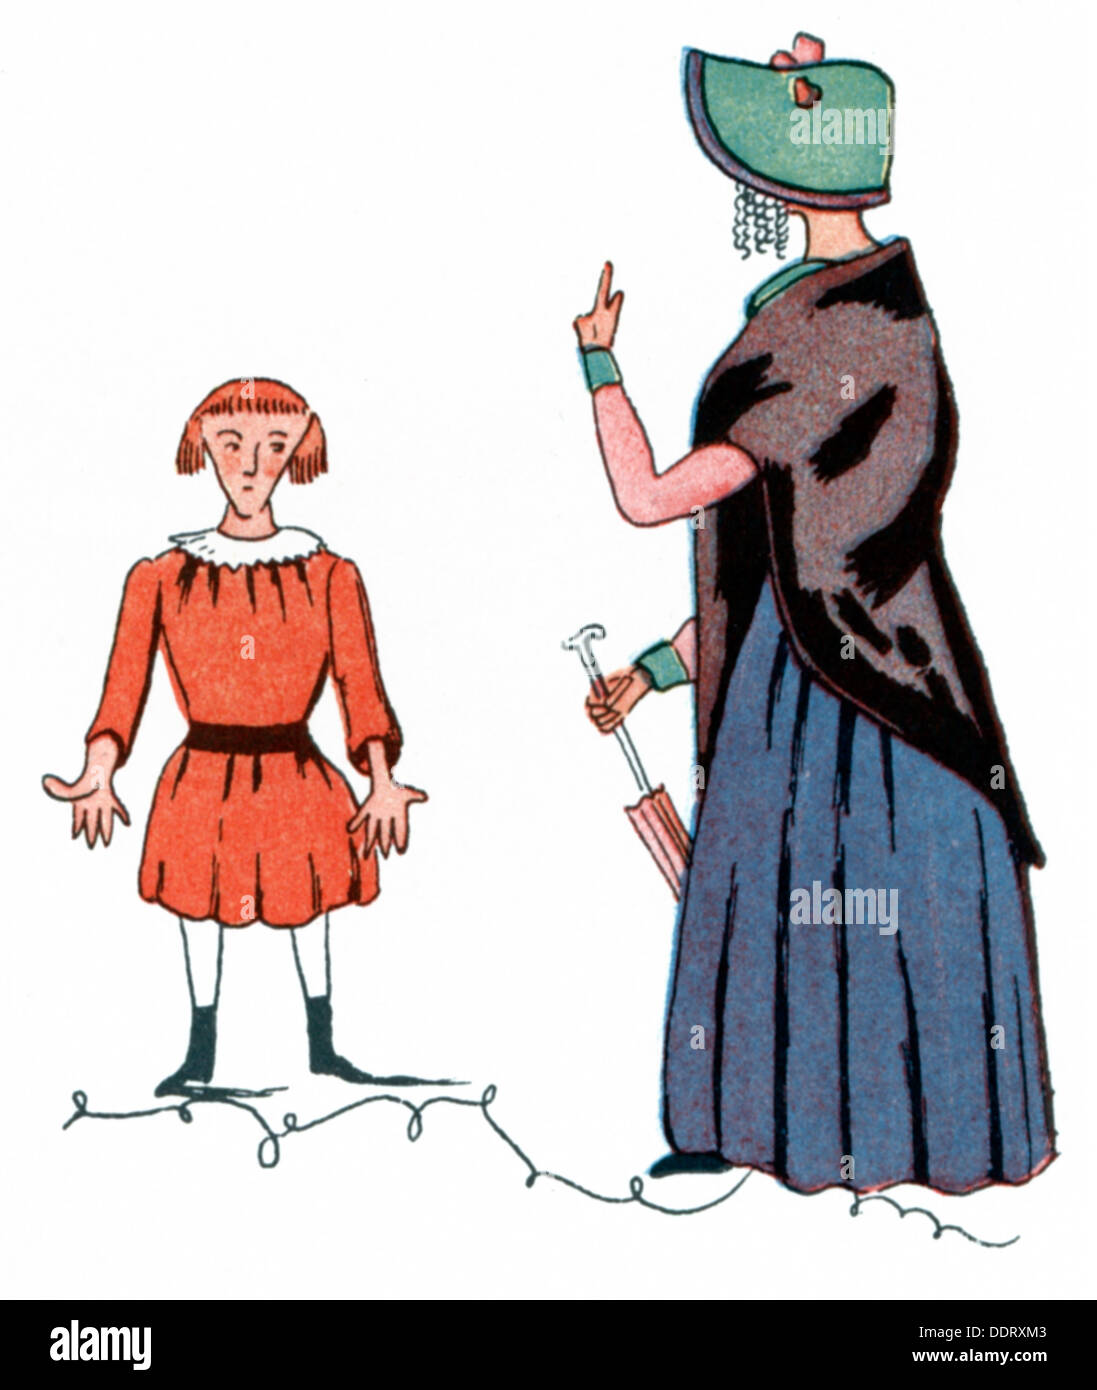 literature, 'Der Struwwelpeter', The Story of the Thumb-Sucker, by Heinrich Hoffmann (1809 - 1894), 1845, illustration, first edition, 1845, Additional-Rights-Clearences-NA - Stock Image